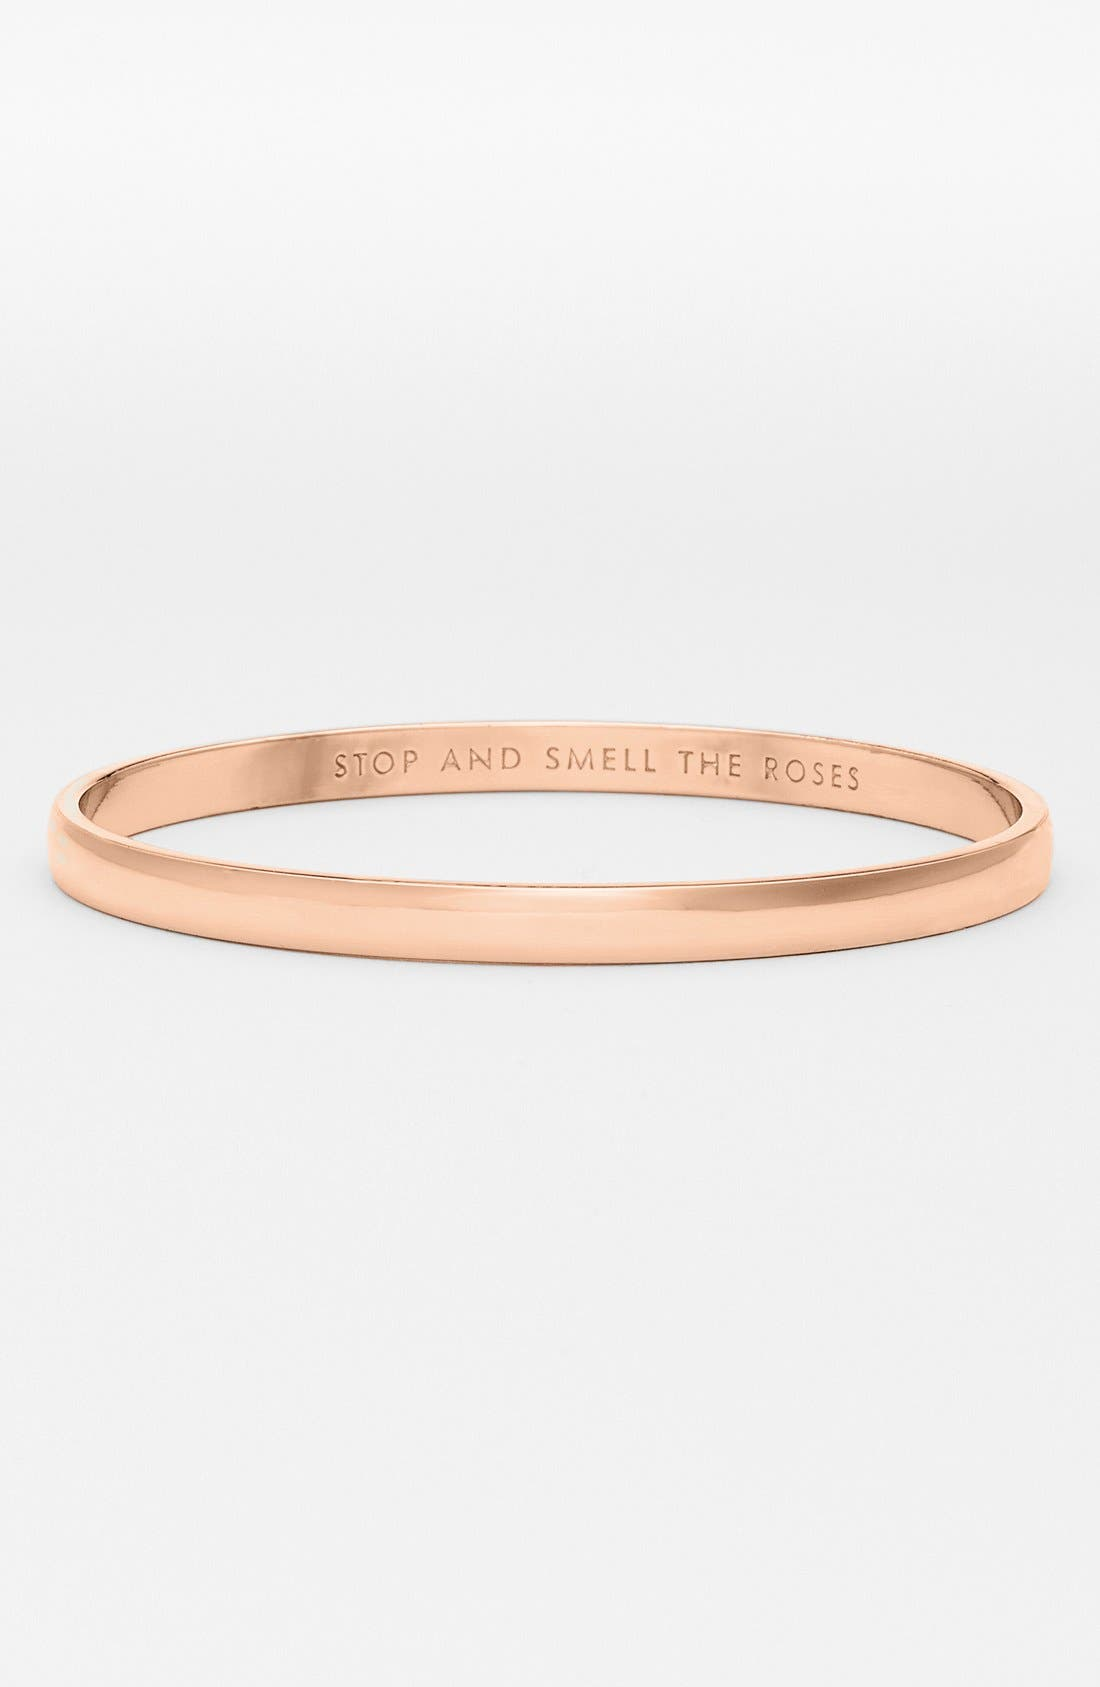 Alternate Image 1 Selected - kate spade new york 'idiom - stop and smell the roses' bangle